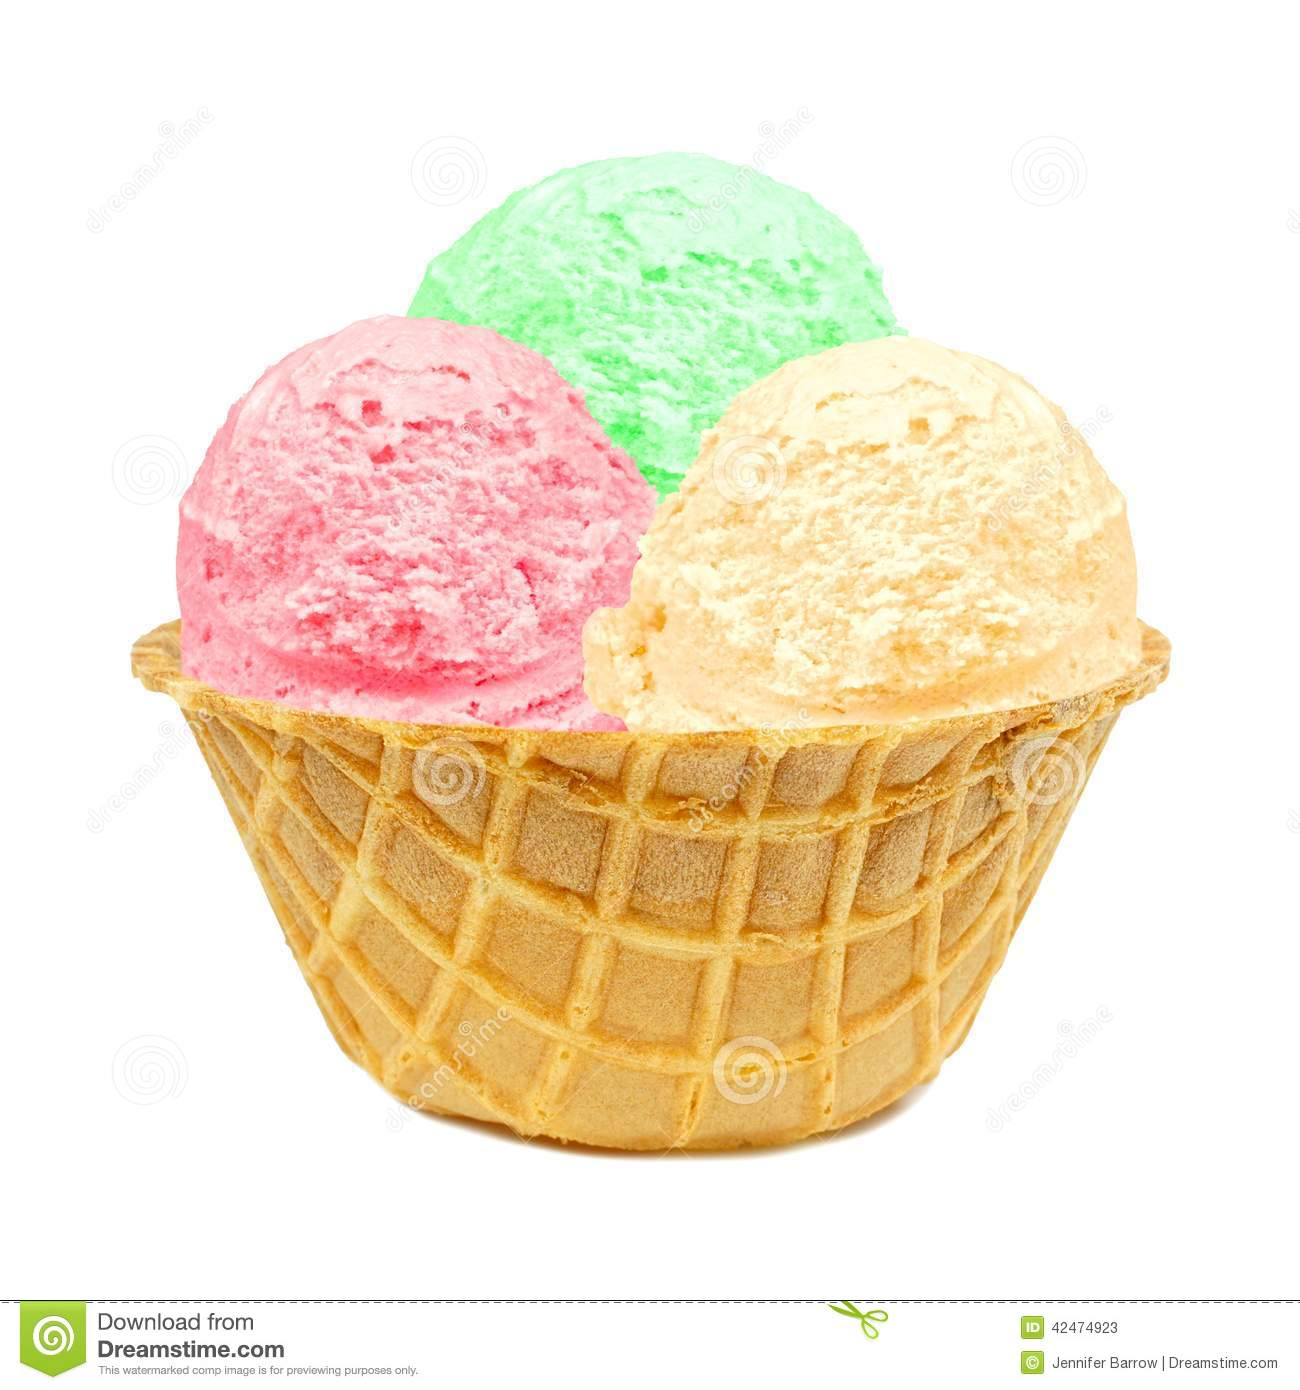 Ice Cream In A Waffle Bowl Stock Photo - Image: 42474923